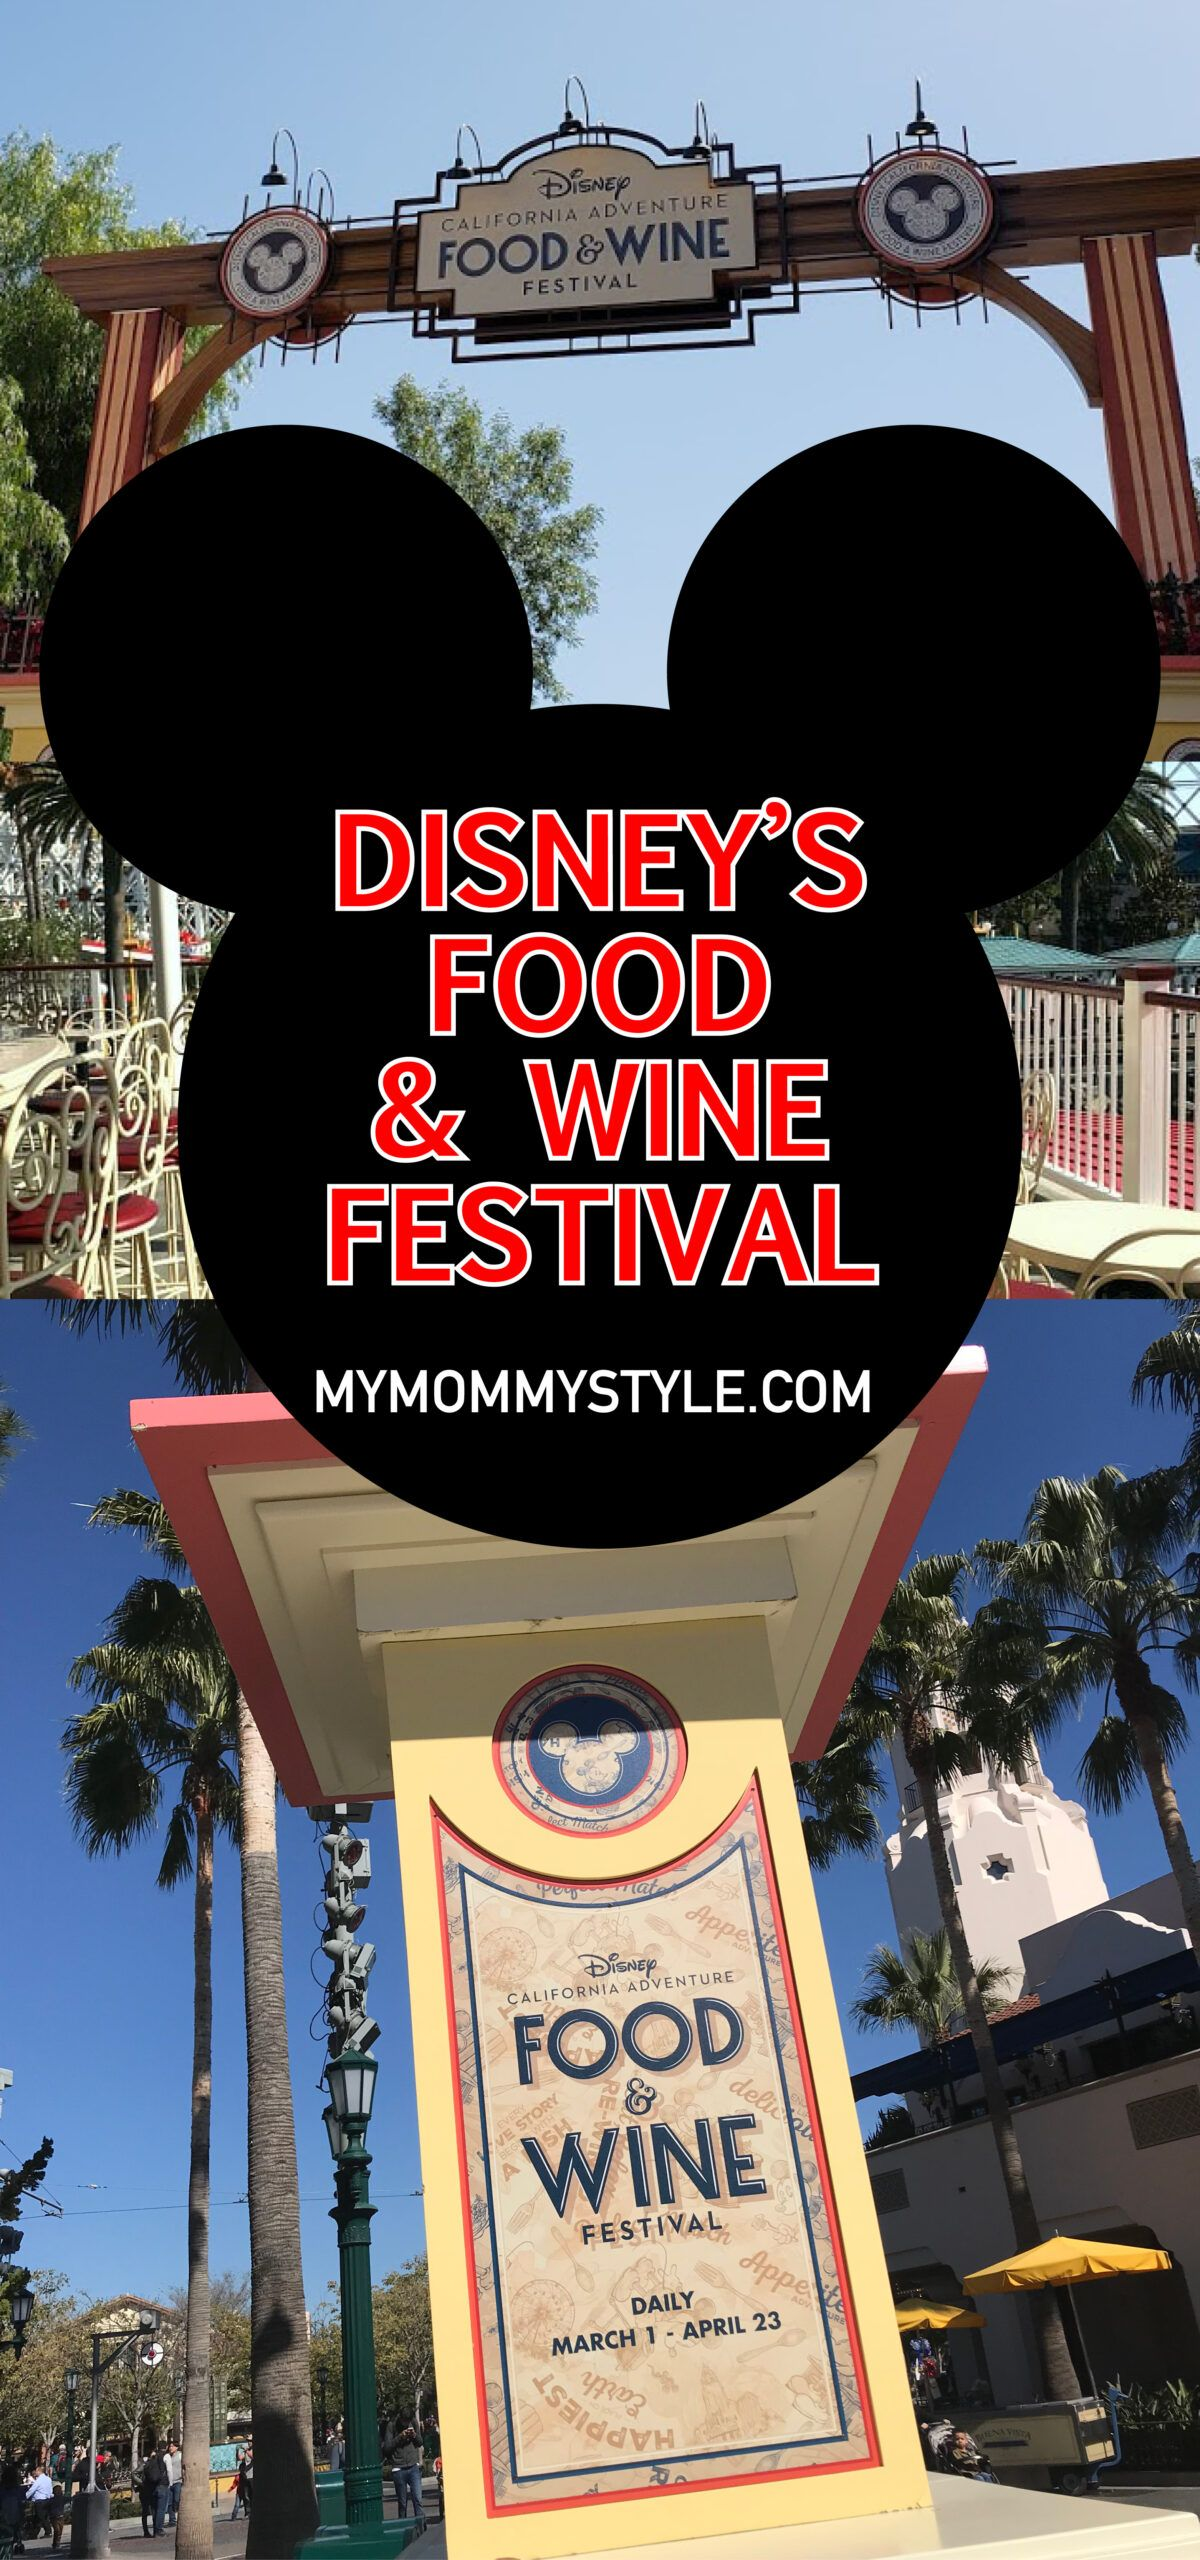 Disney Food And Wine Festival My Mommy Style In 2020 Wine Festival Disney Food Wine Recipes